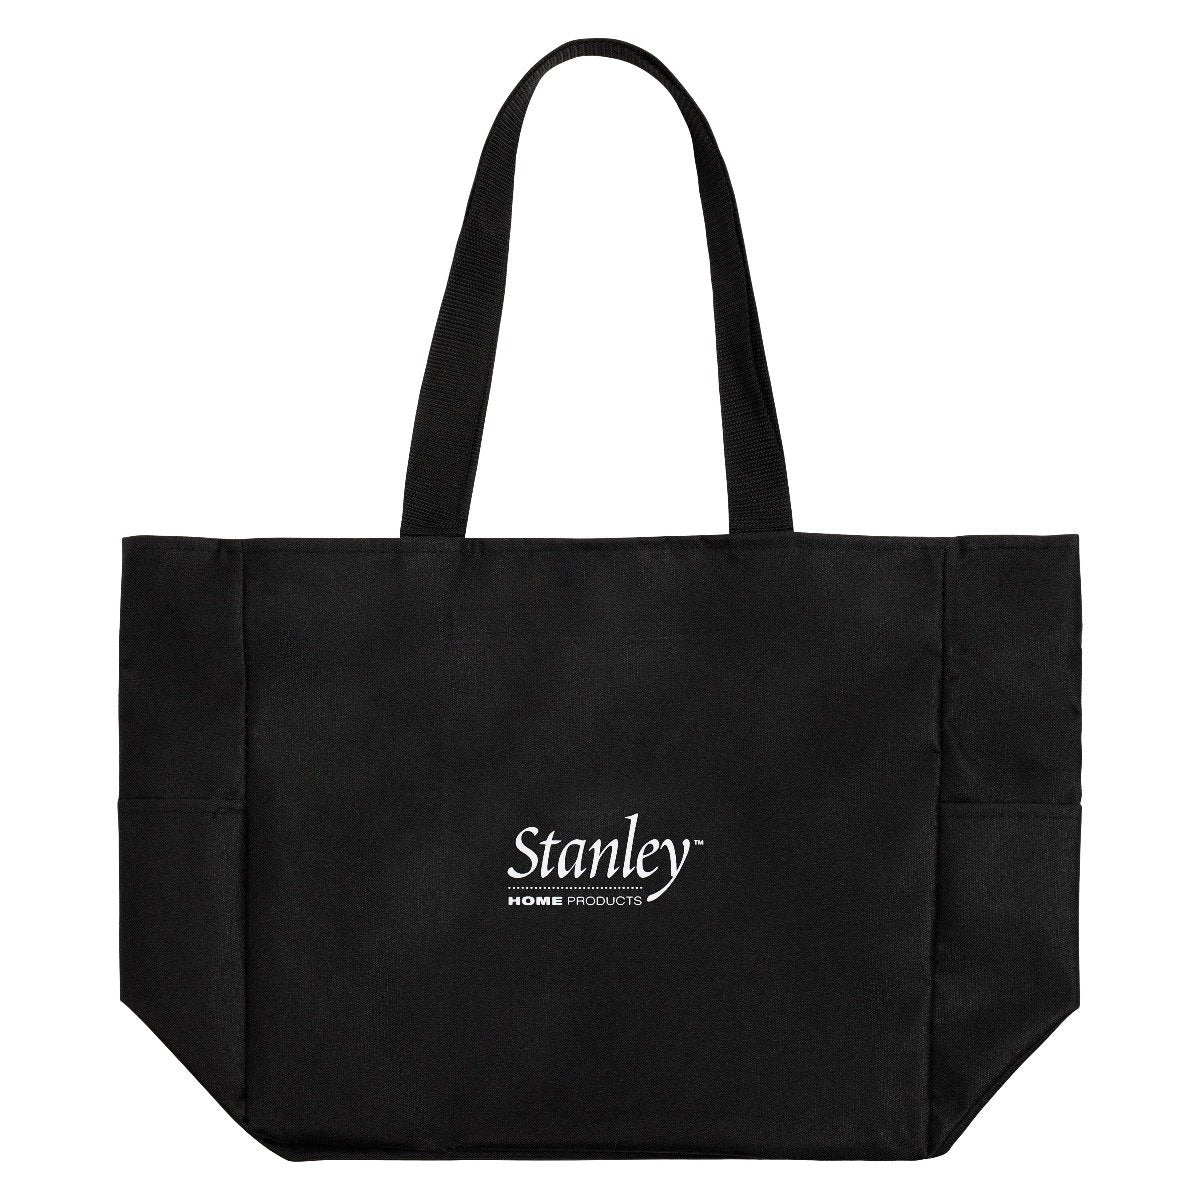 Polyester Zippered Bag with Fuller Brush & Stanley Logos-Other Cleaning Supplies-Fuller Brush Company